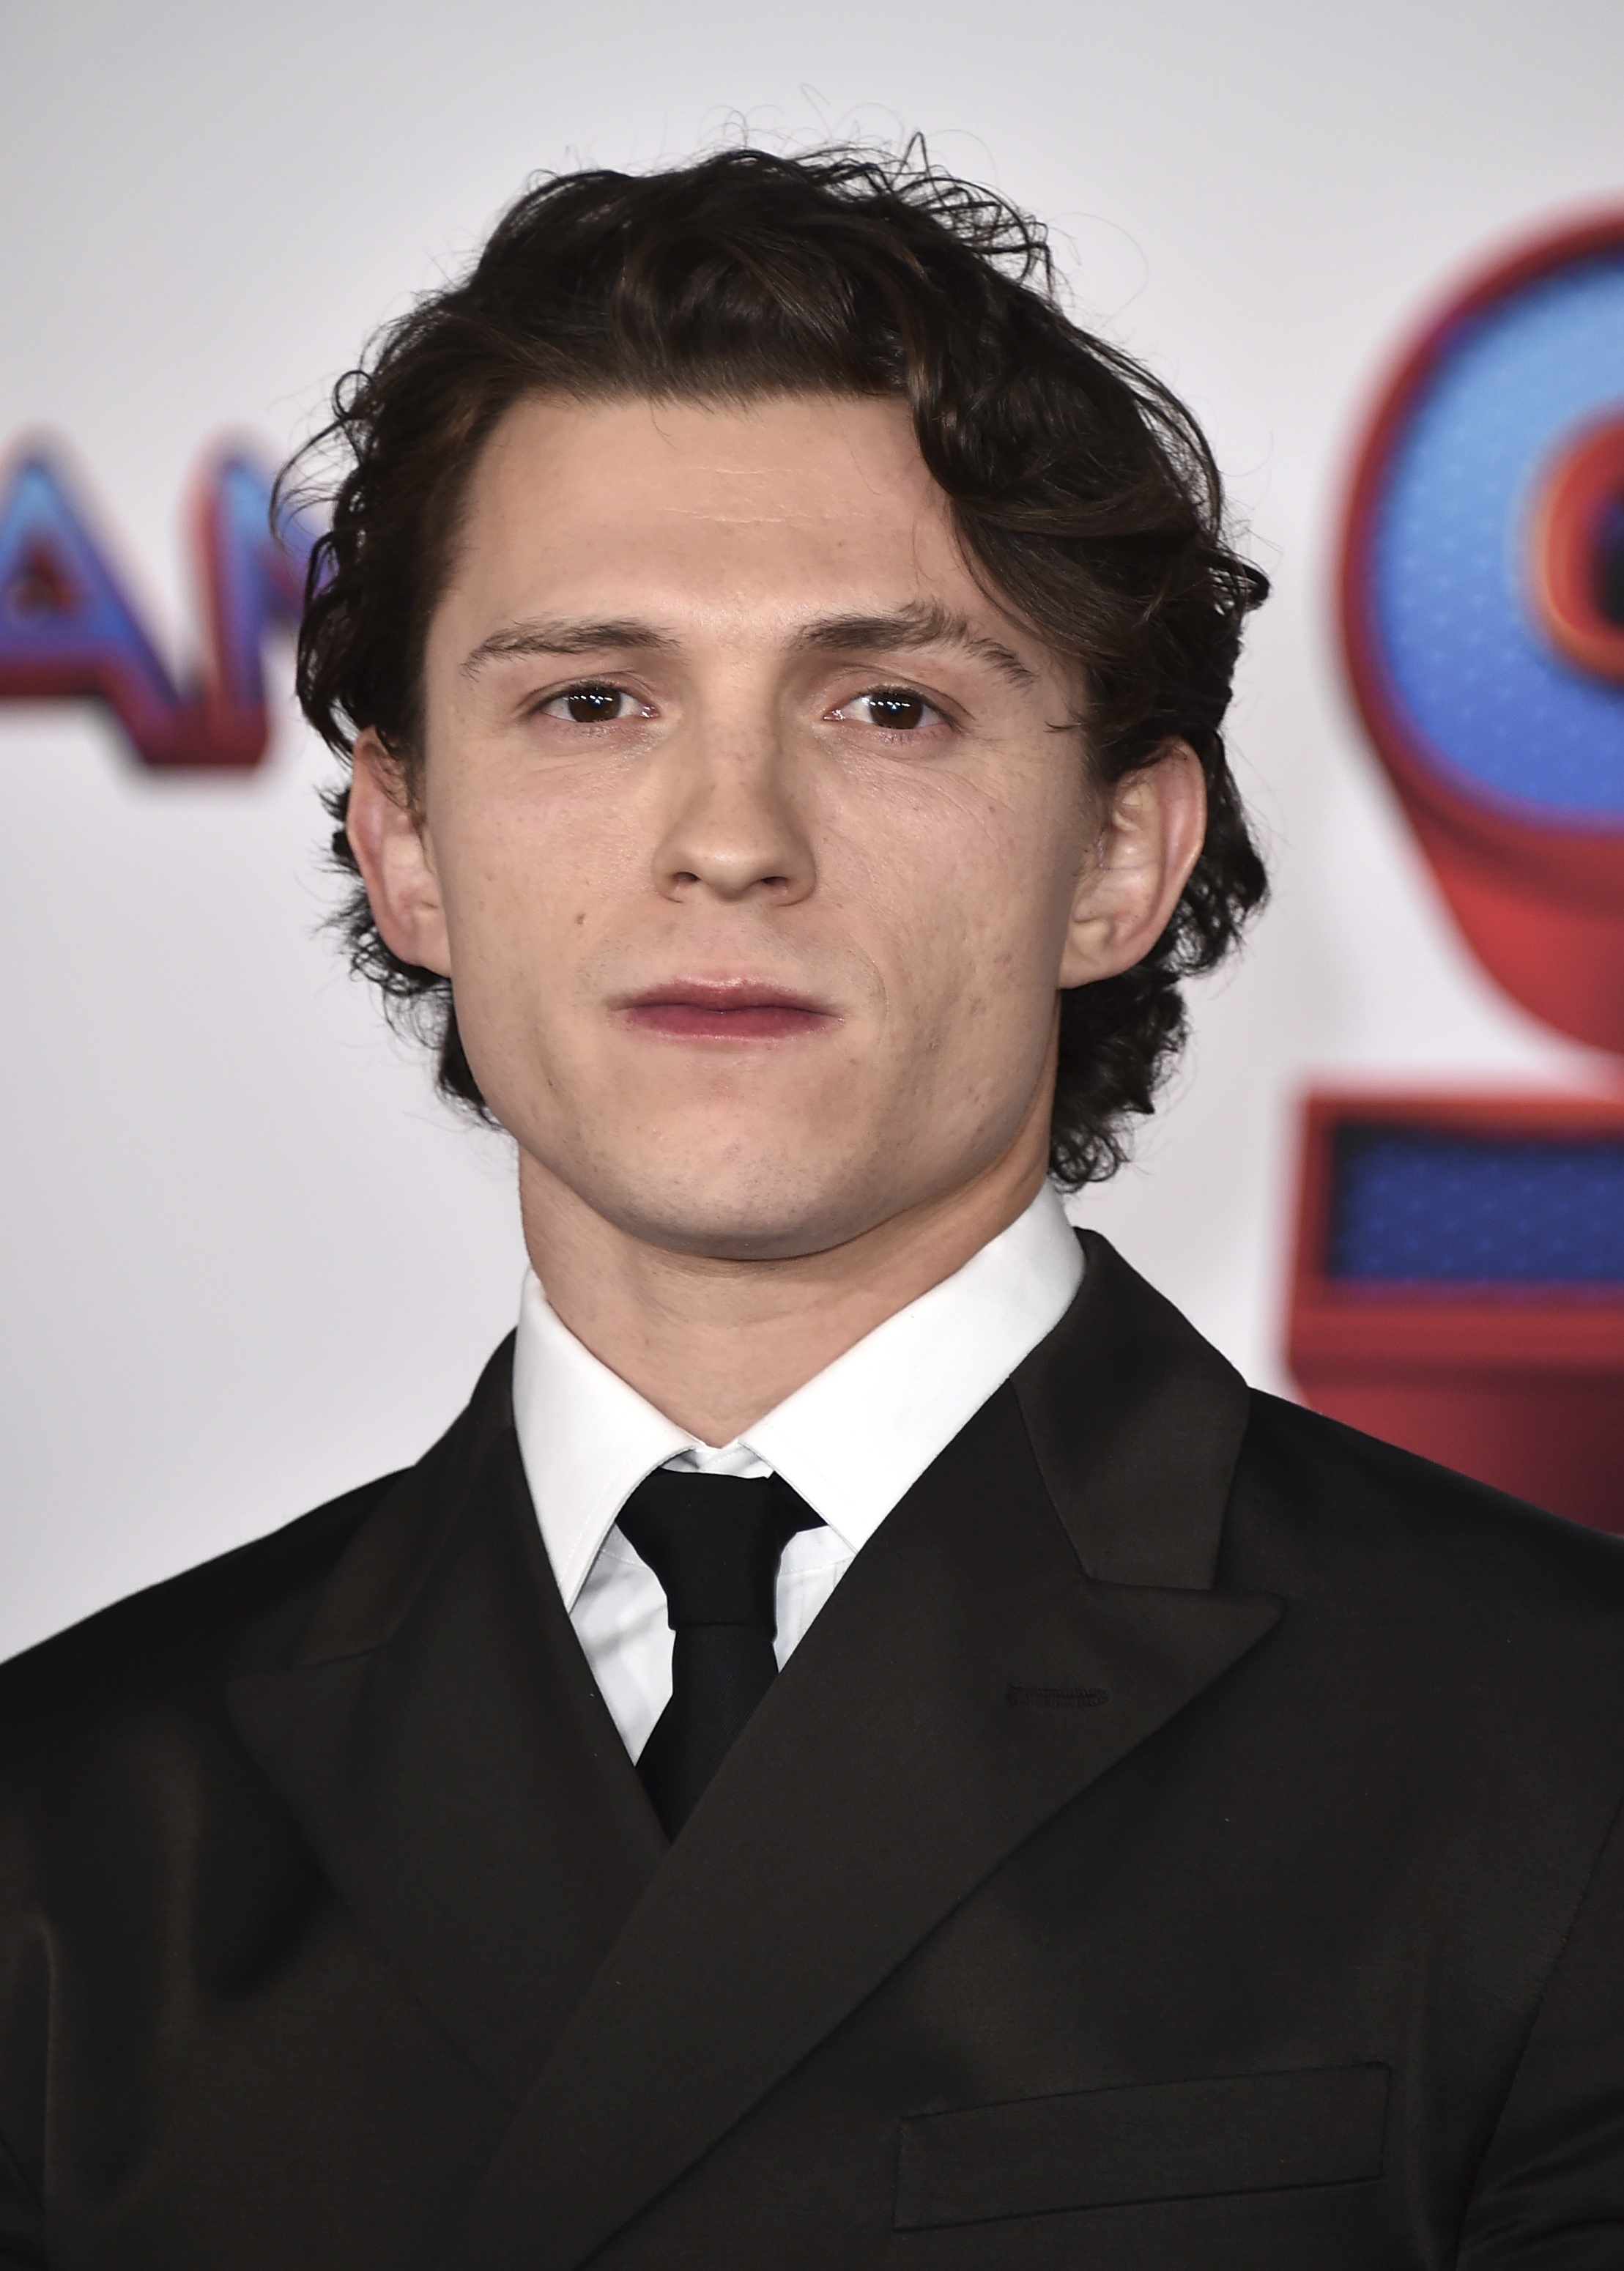 Image result for tom holland civil war